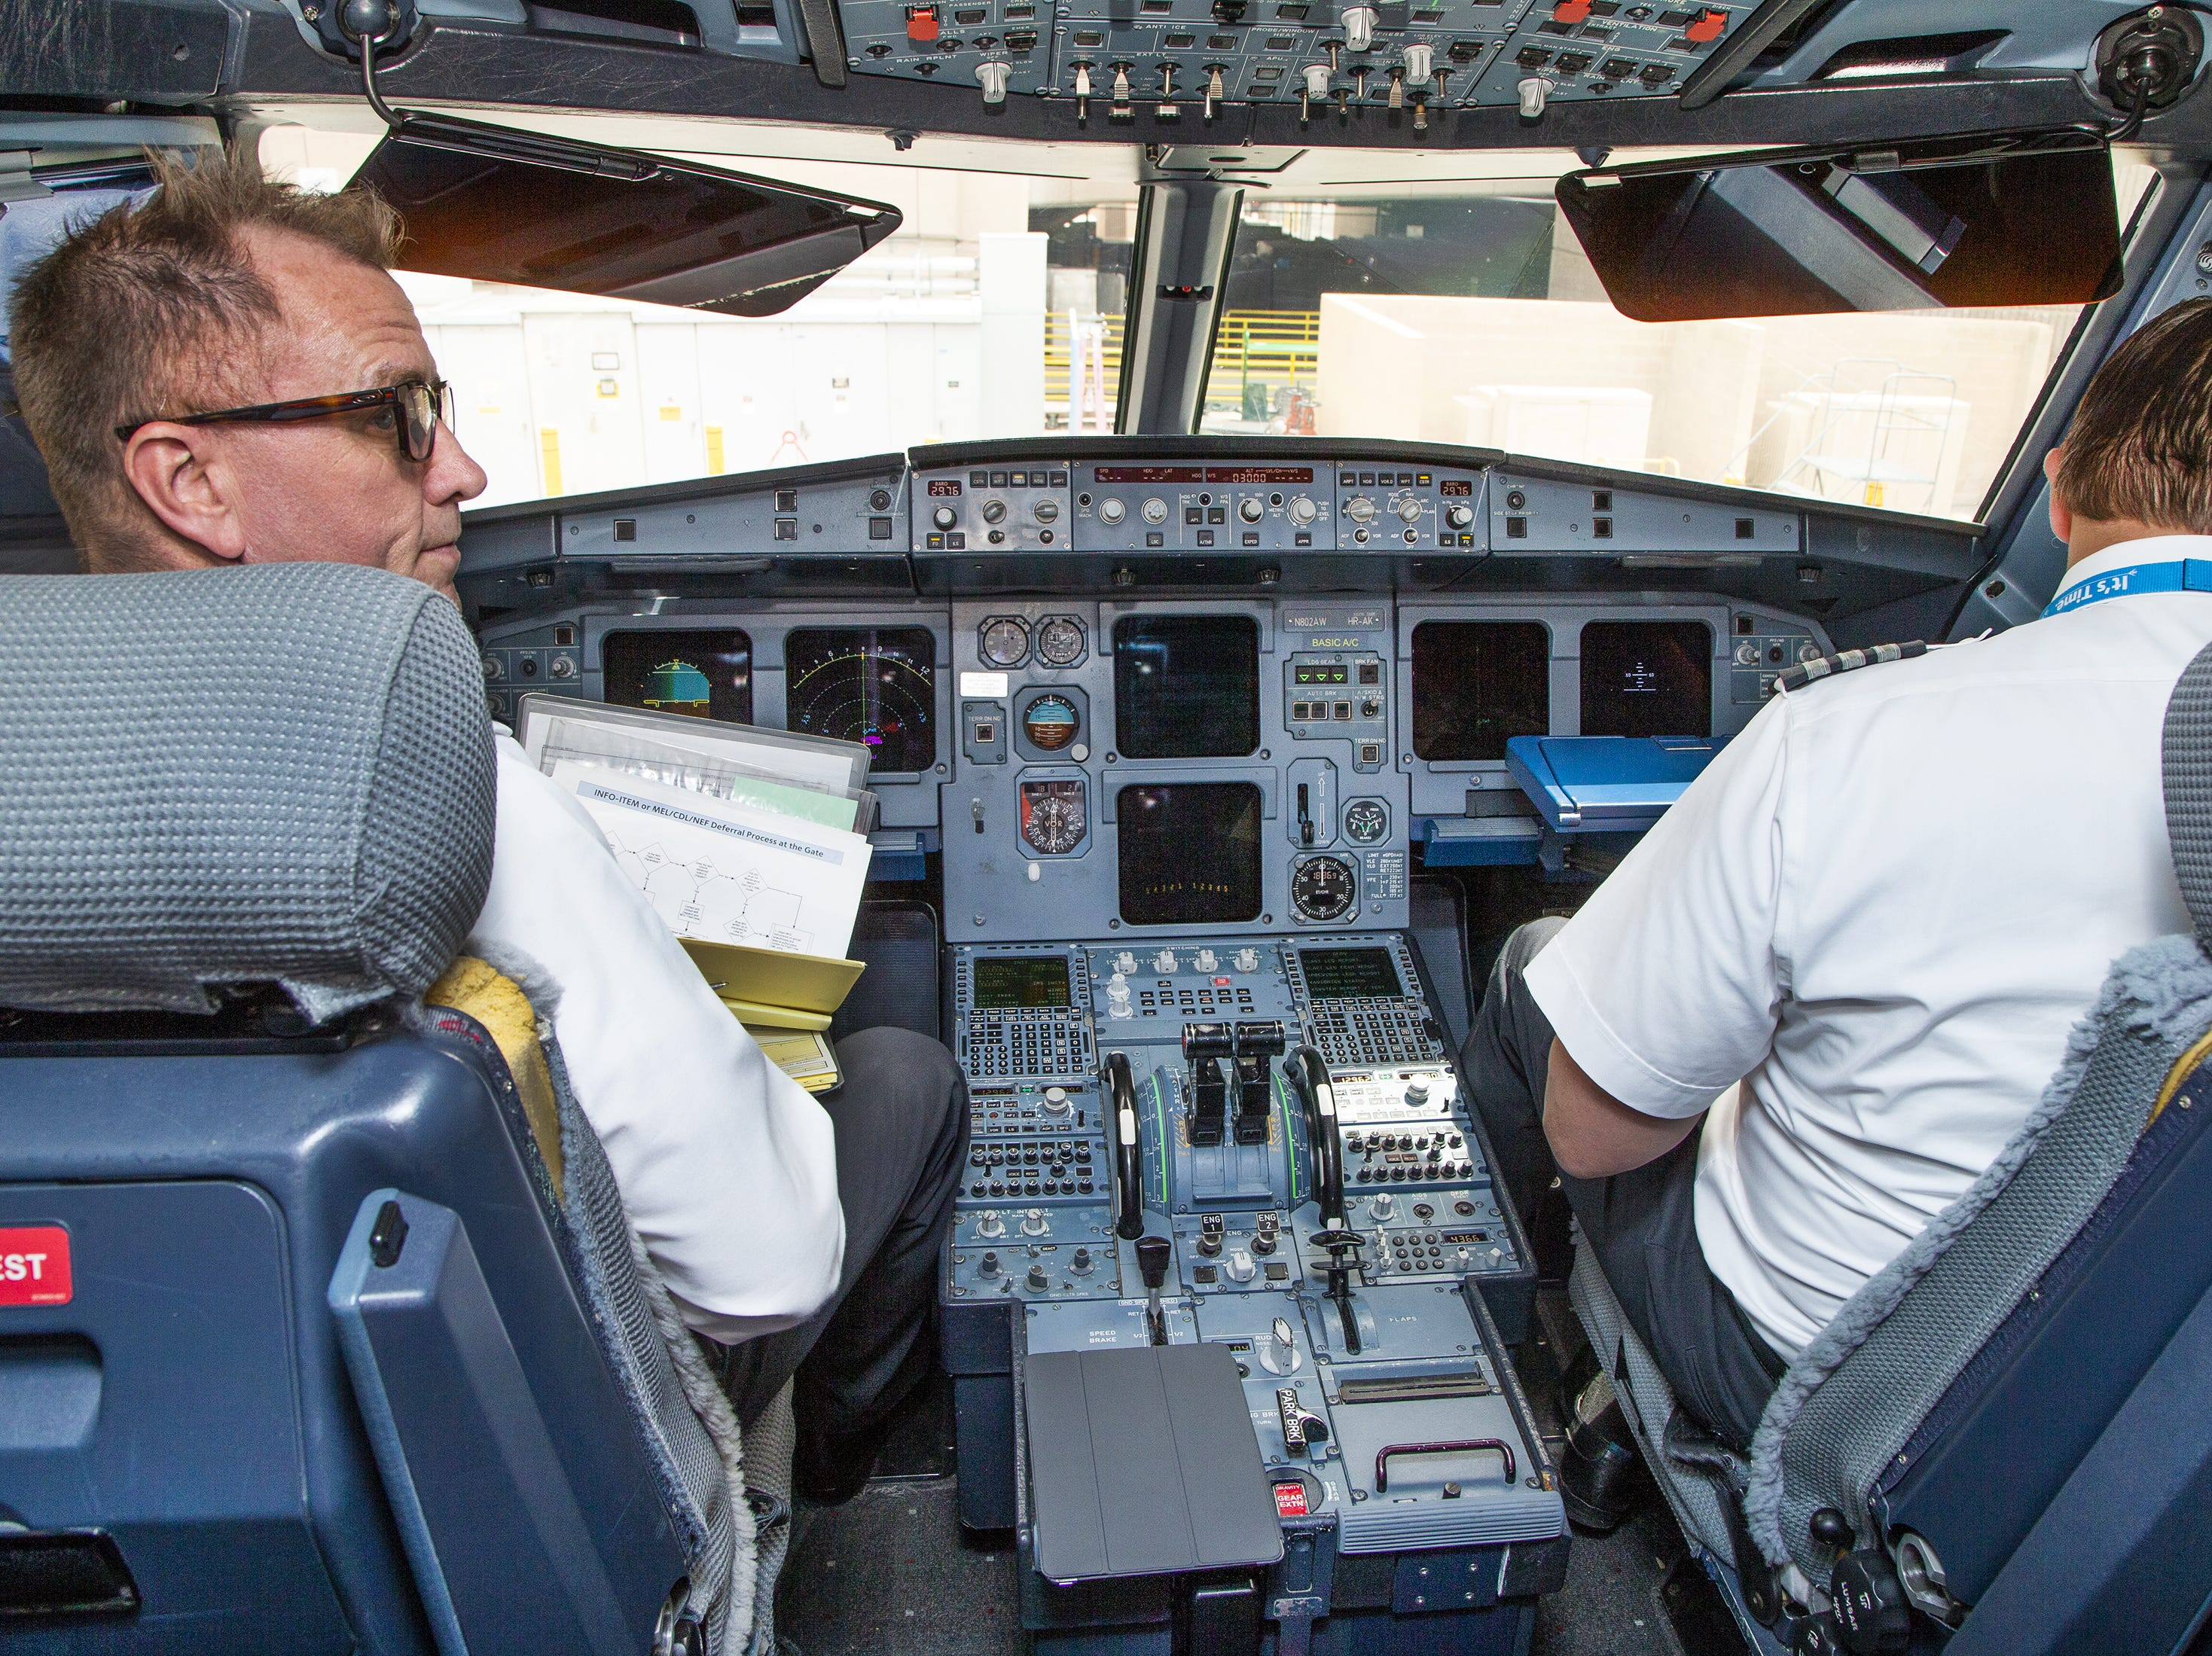 The pilot and co-pilot work in the cockpit after an American Airlines Airbus A-319 landed at Sky Harbor International Airport in Phoenix after a flight from Tucson, Friday, May 10, 2019.  The flight was unloaded, serviced, cleaned, reloaded and reboarded for a flight to Austin within 30 minutes.